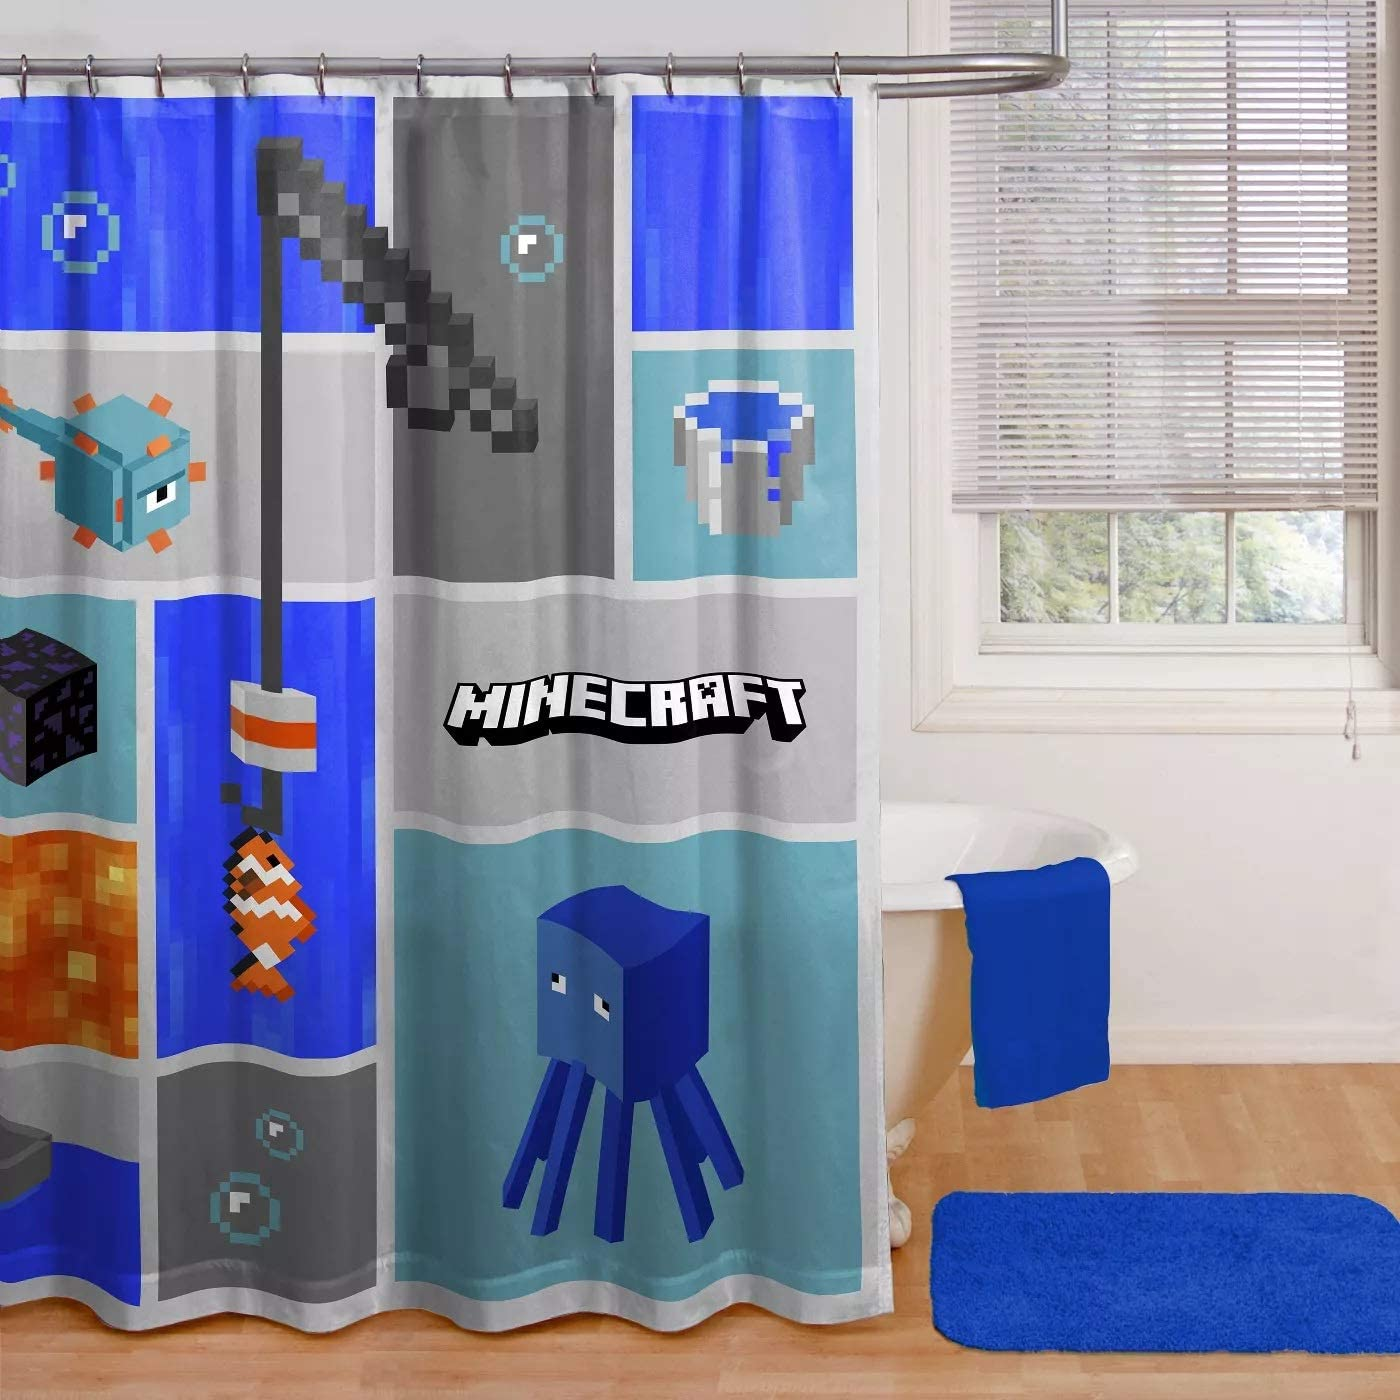 Minecraft Shower Curtain Super sale period Challenge the lowest price of Japan limited